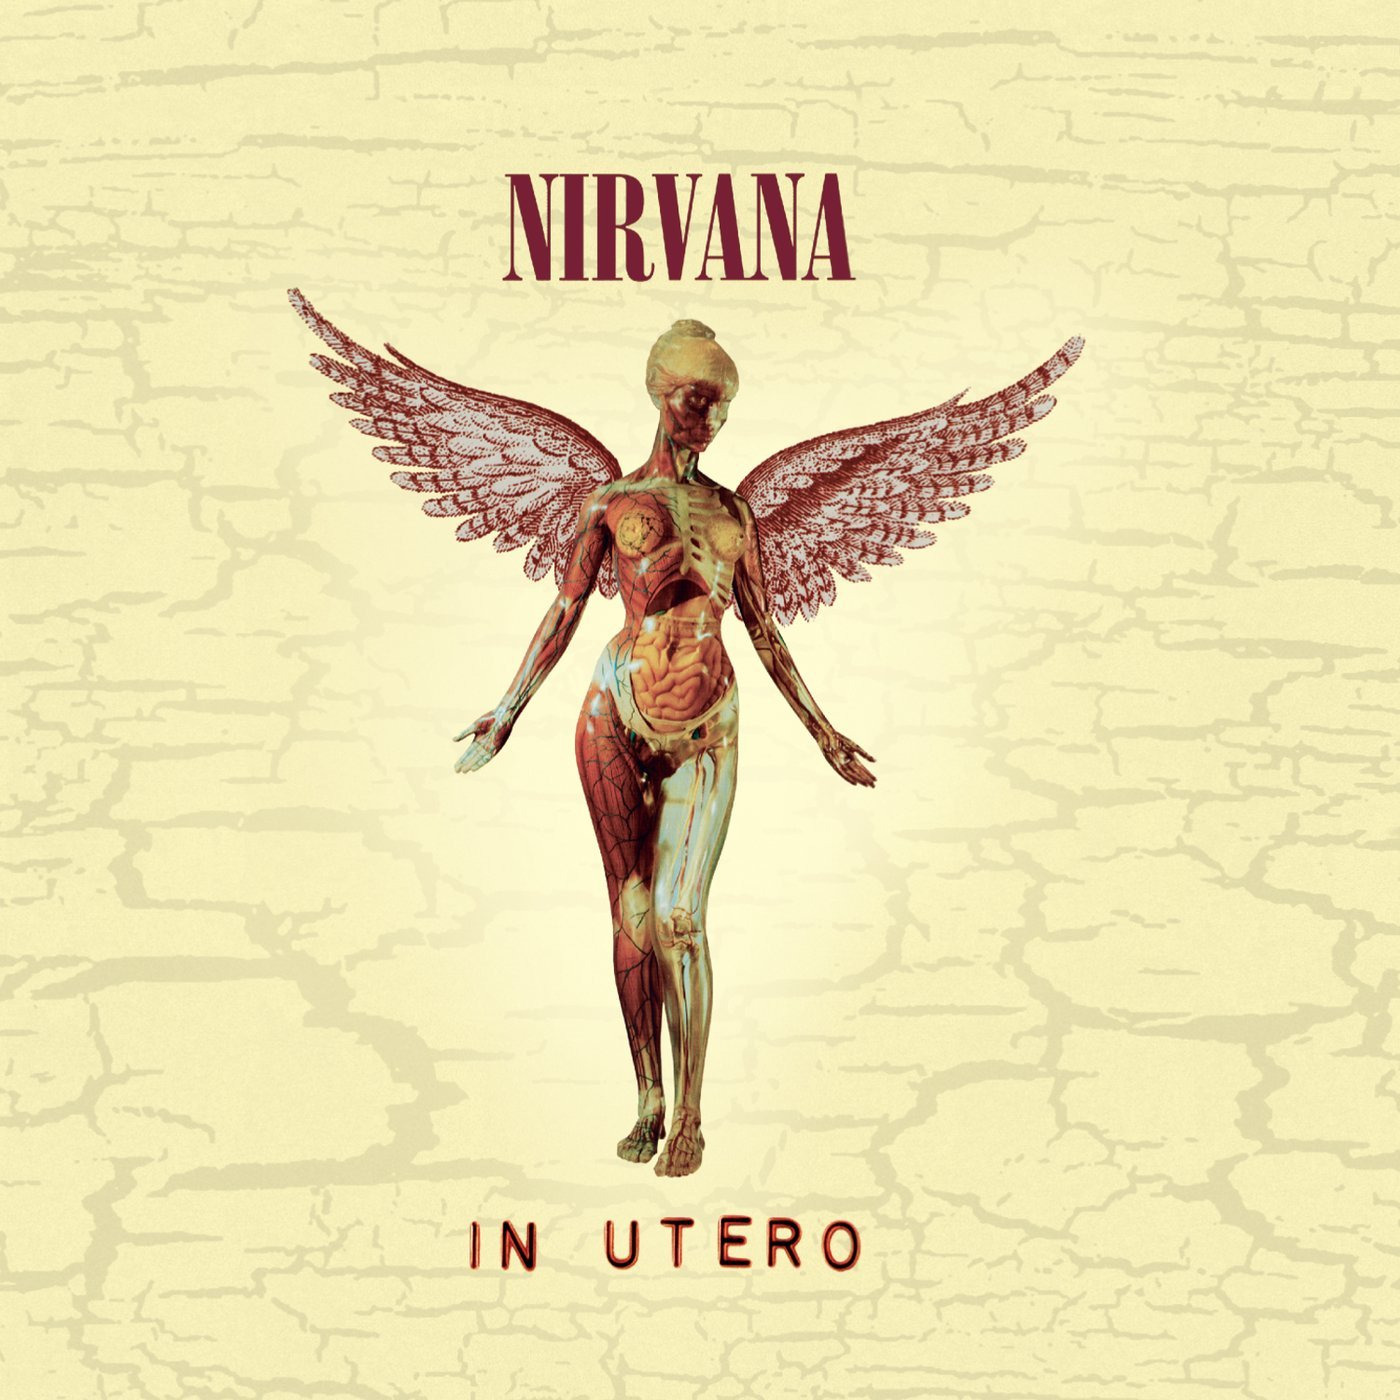 Nirvana's In Utero artwork